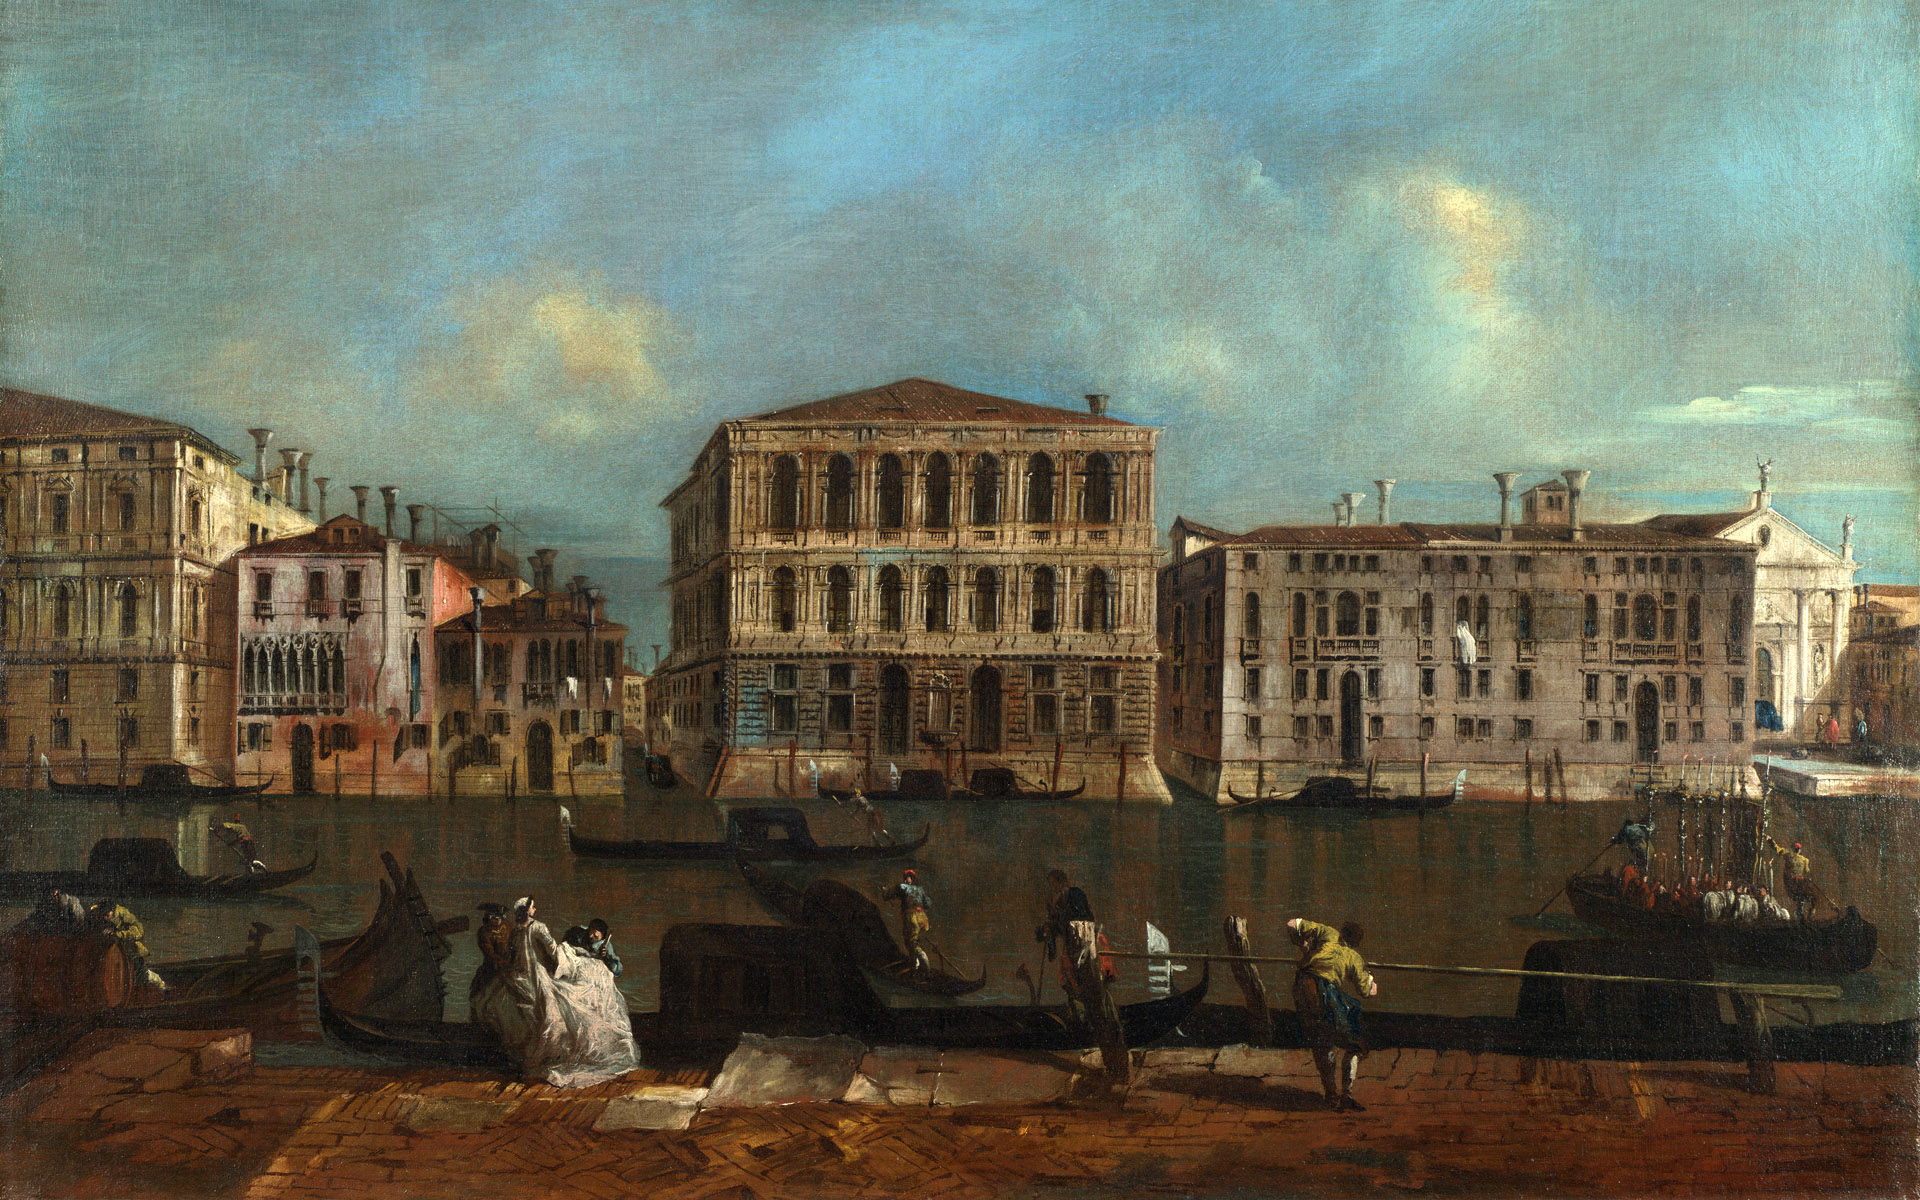 Full Title: Venice: The Grand Canal With Palazzo Pesaro Artist: Francesco  Guardi Date